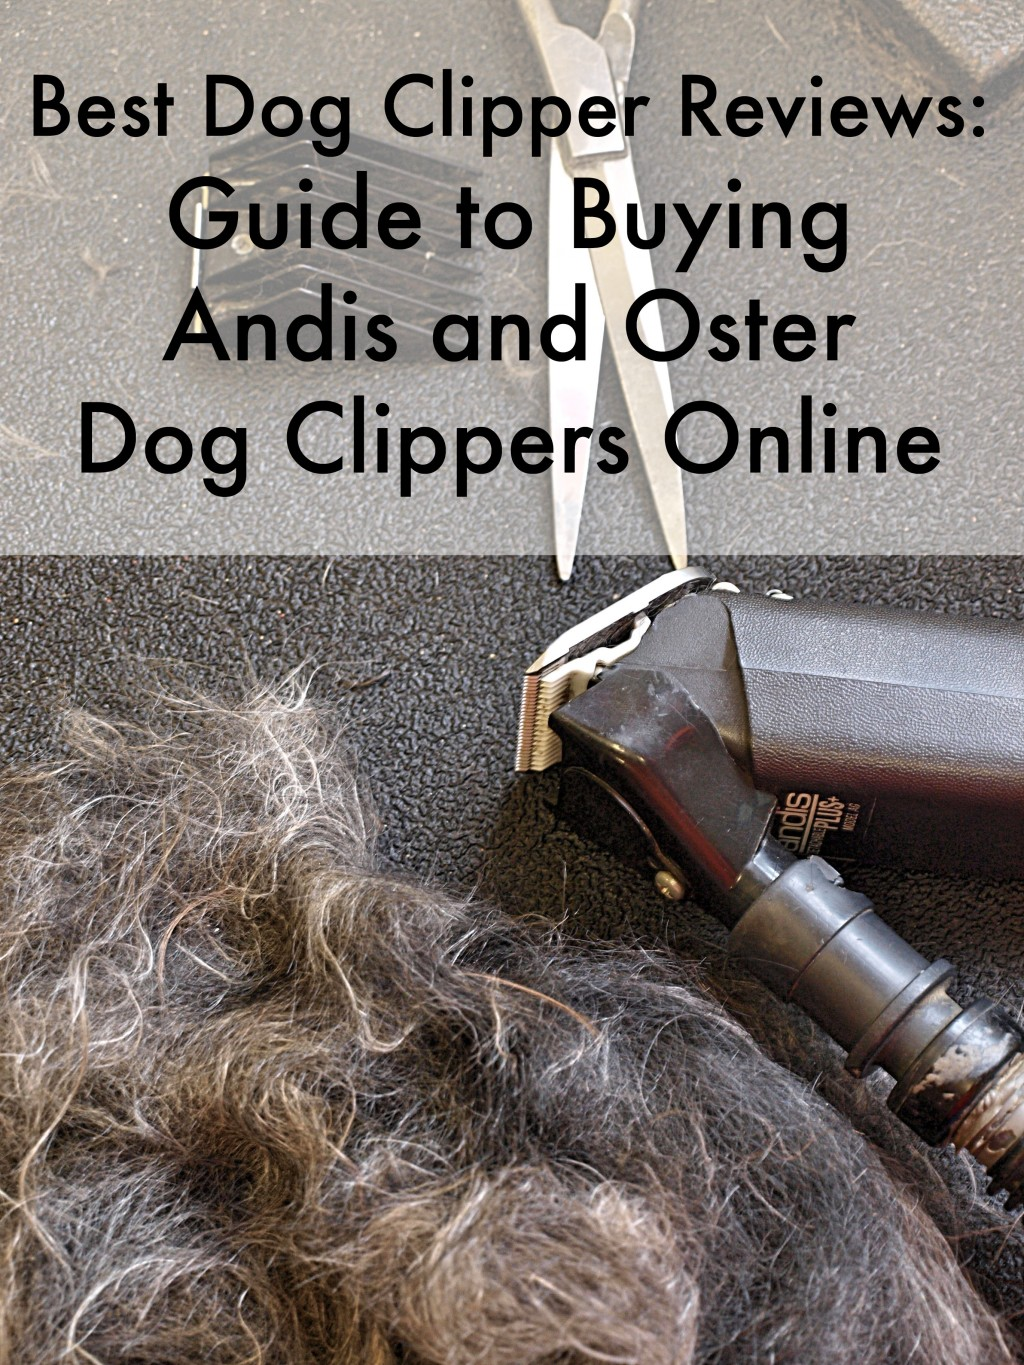 Guide To Buying Andis And Oster Dog Clippers Pethelpful